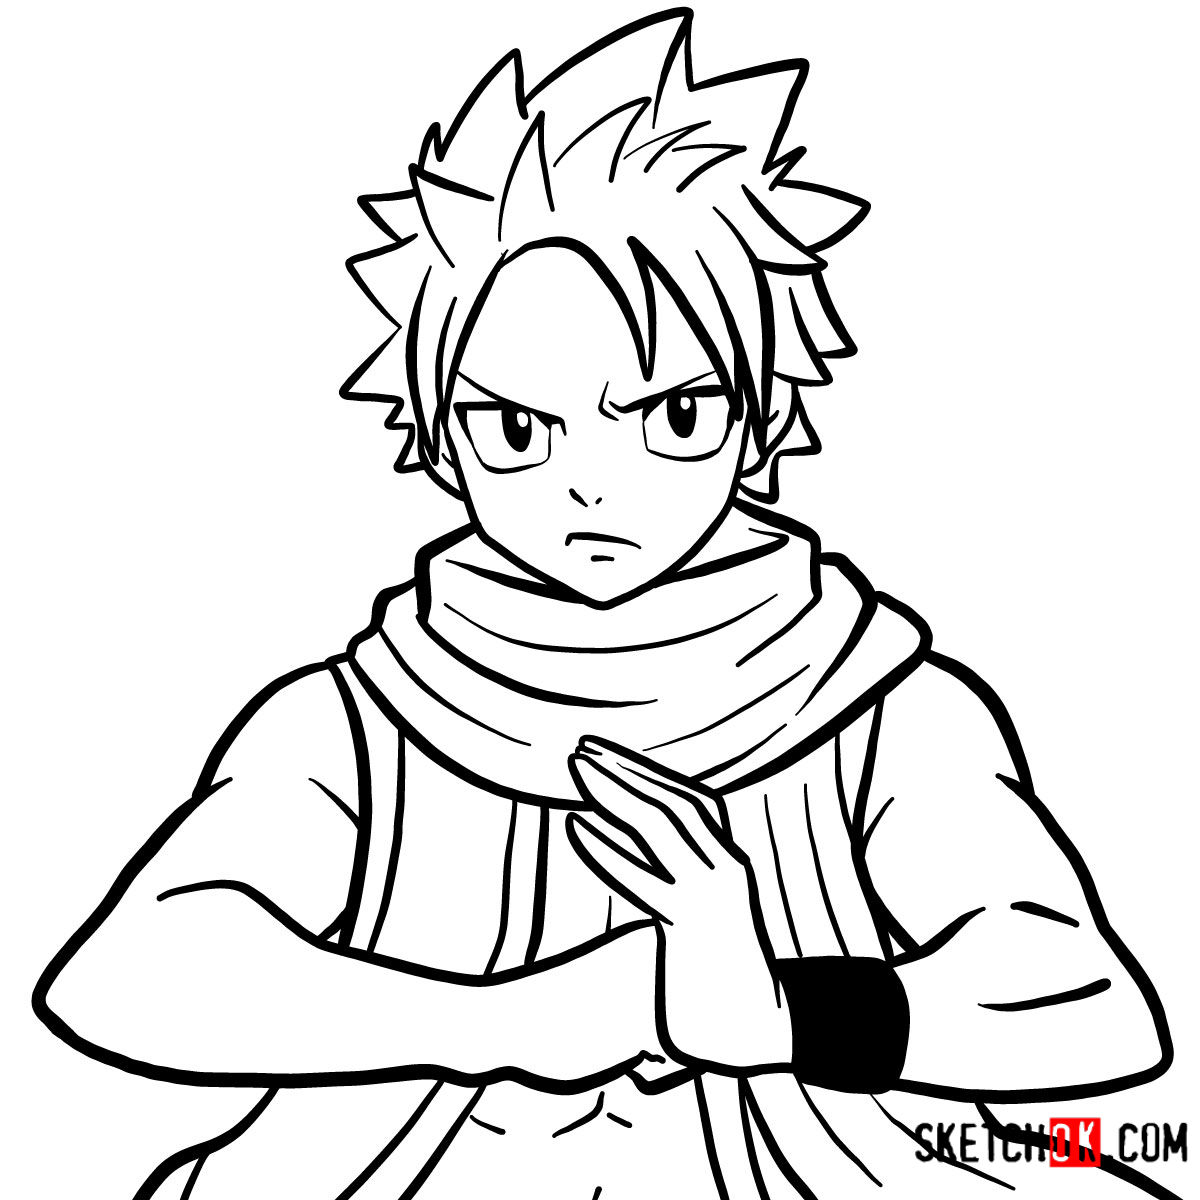 How to draw Natsu Dragneel's face | Fairy Tail